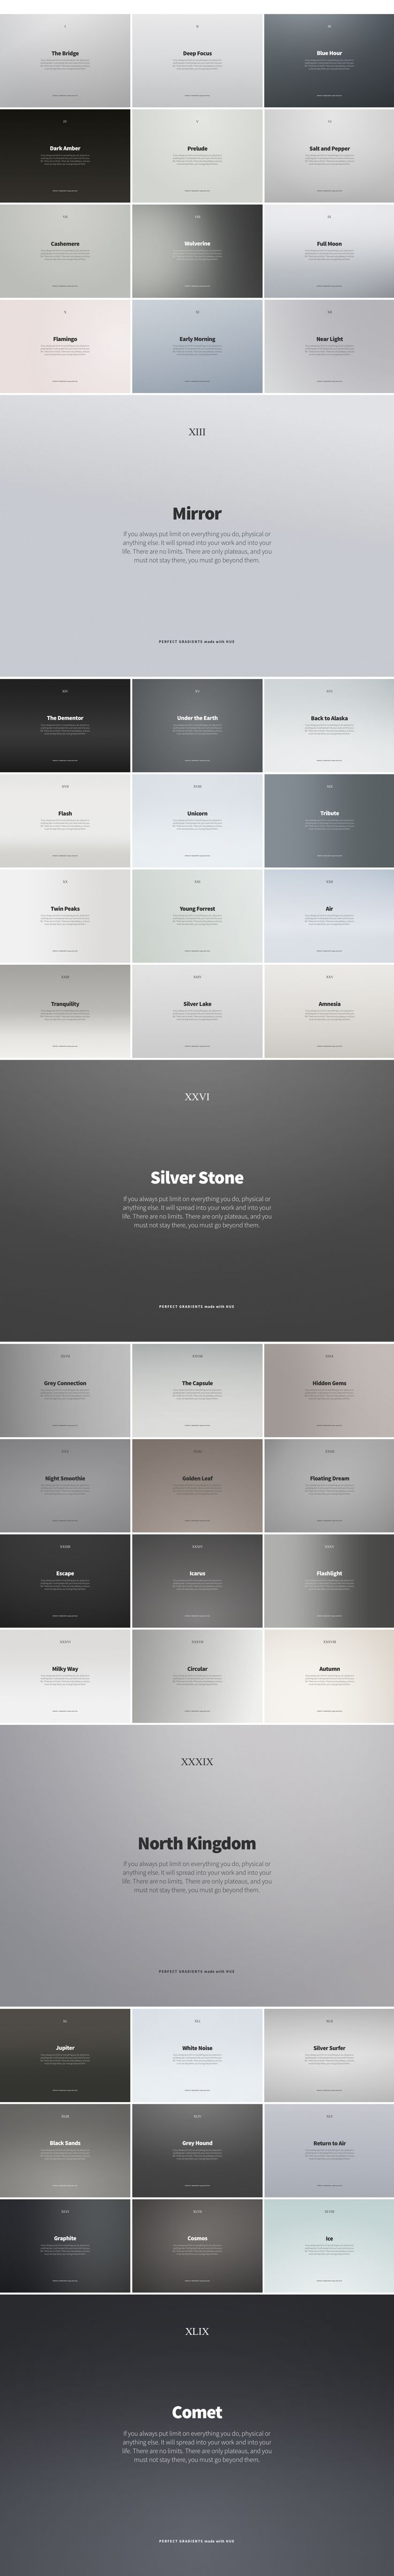 Hue: Free Promo Backdrops and Gradients on Behance